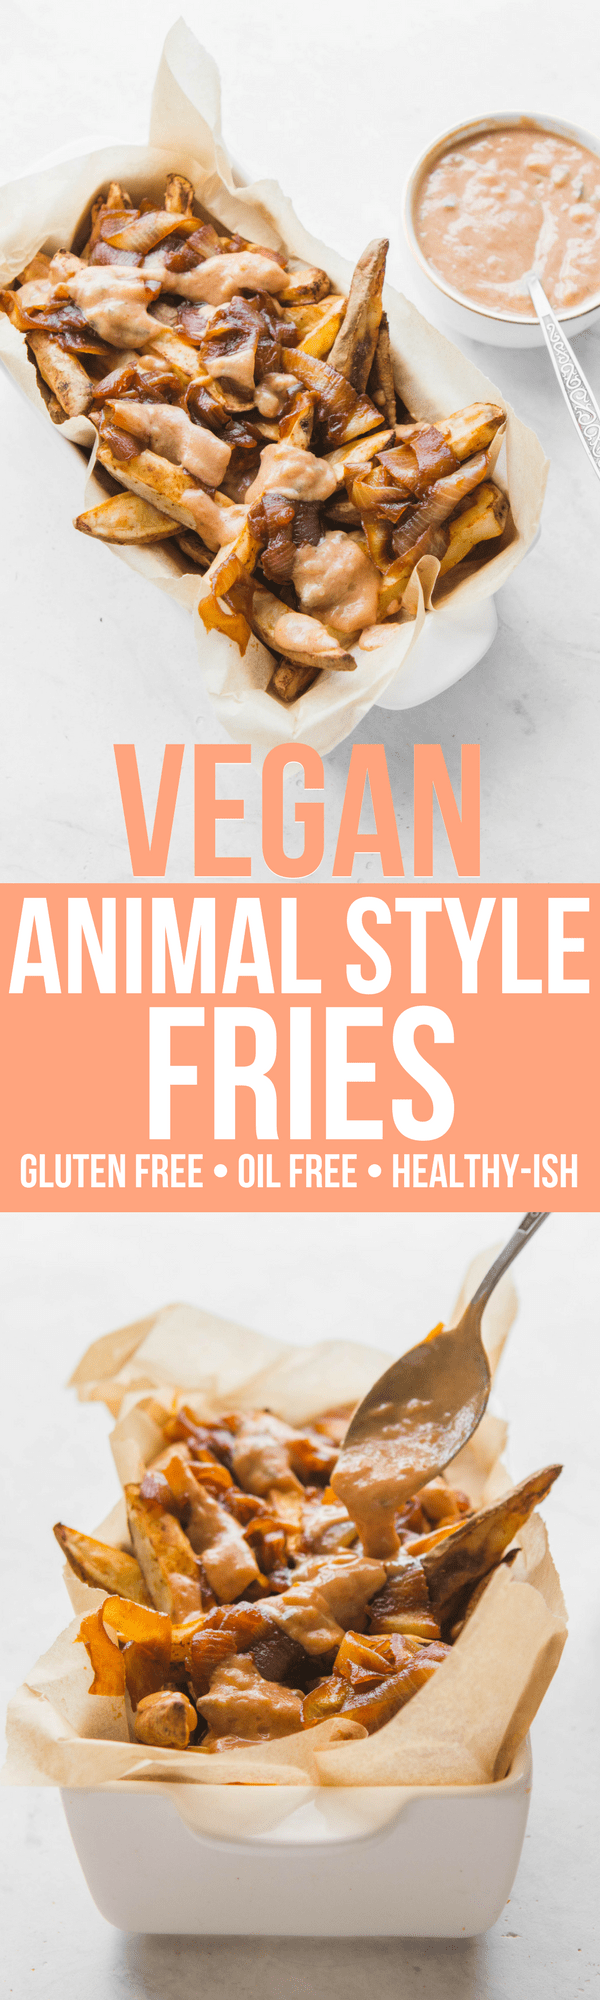 Vegan Animal Style Fries with Special Sauce in white container